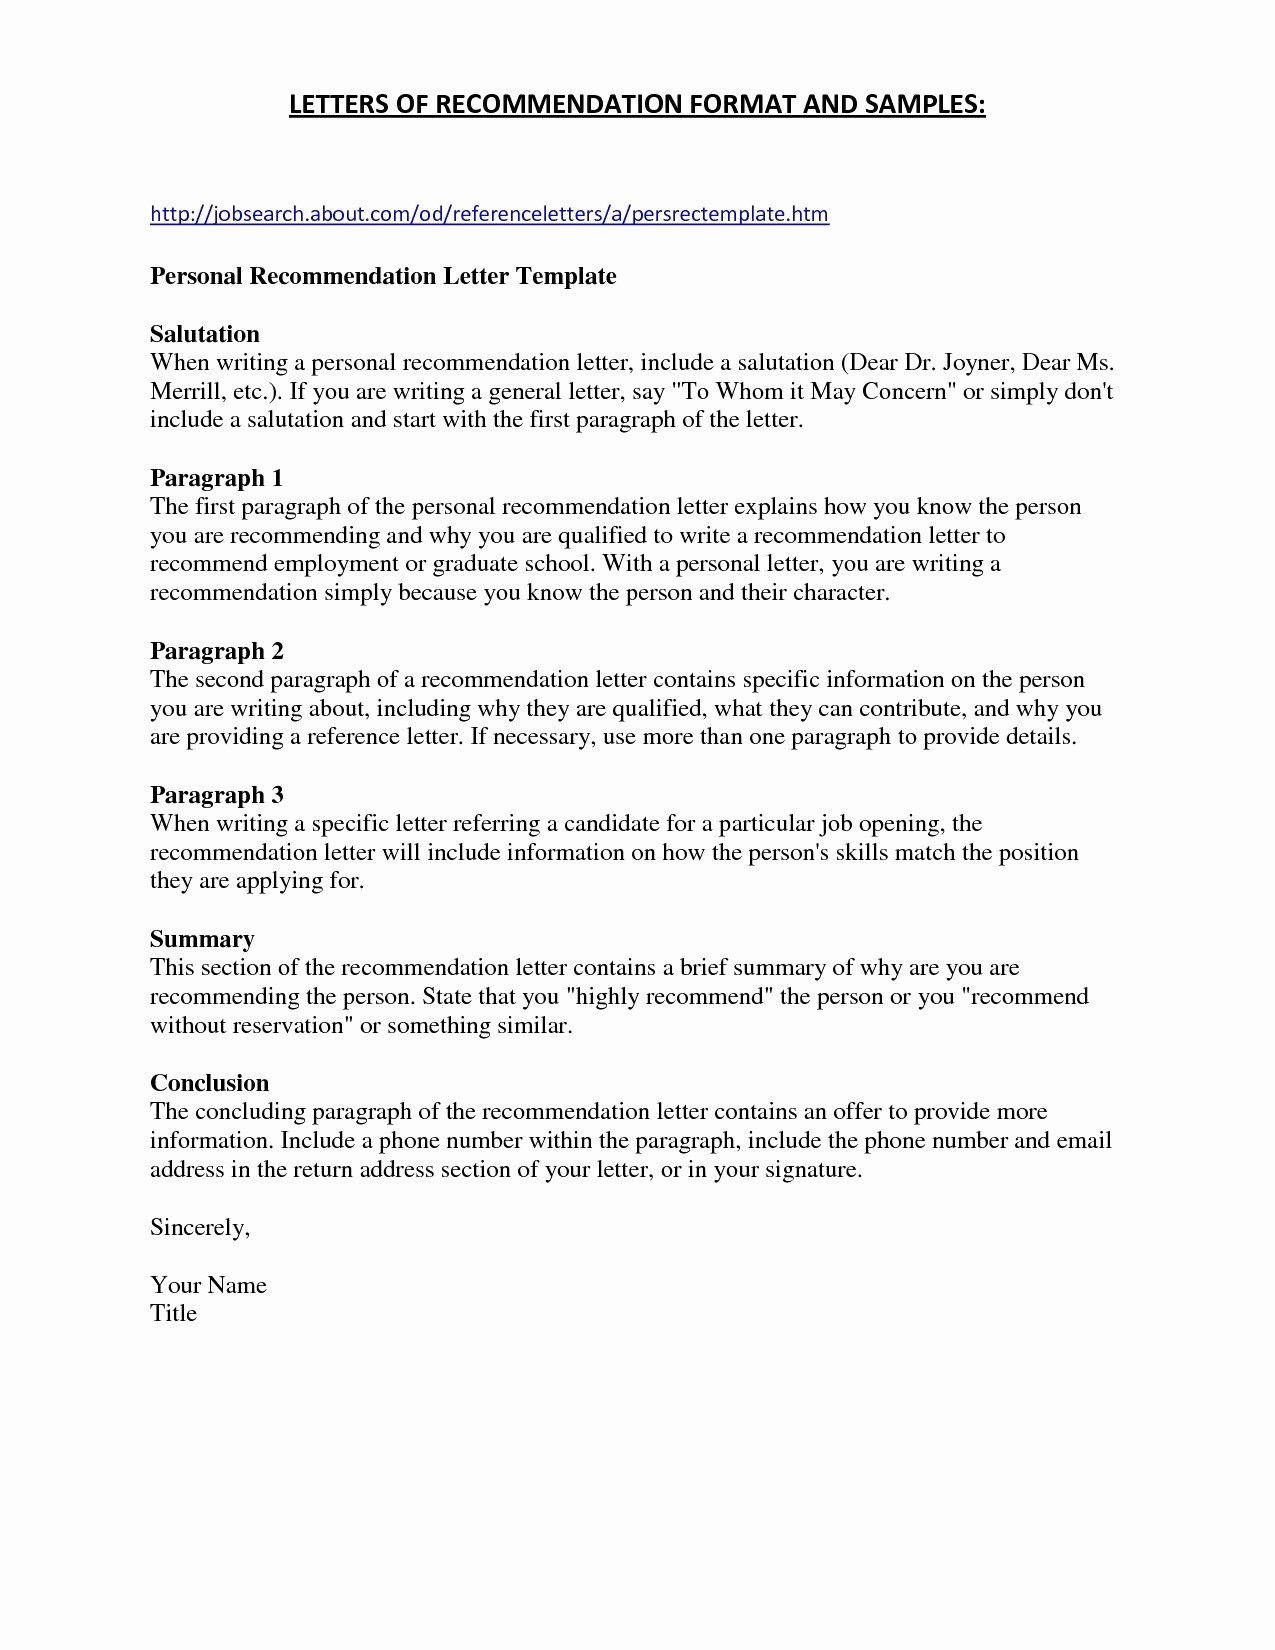 How To Type A Resume Resume And Cover Letter Writing Awesome How To Write A Letter Explanation Lovely Bylaws Template 0d Free Photos Of Resume And Cover Letter Writing how to type a resume|wikiresume.com